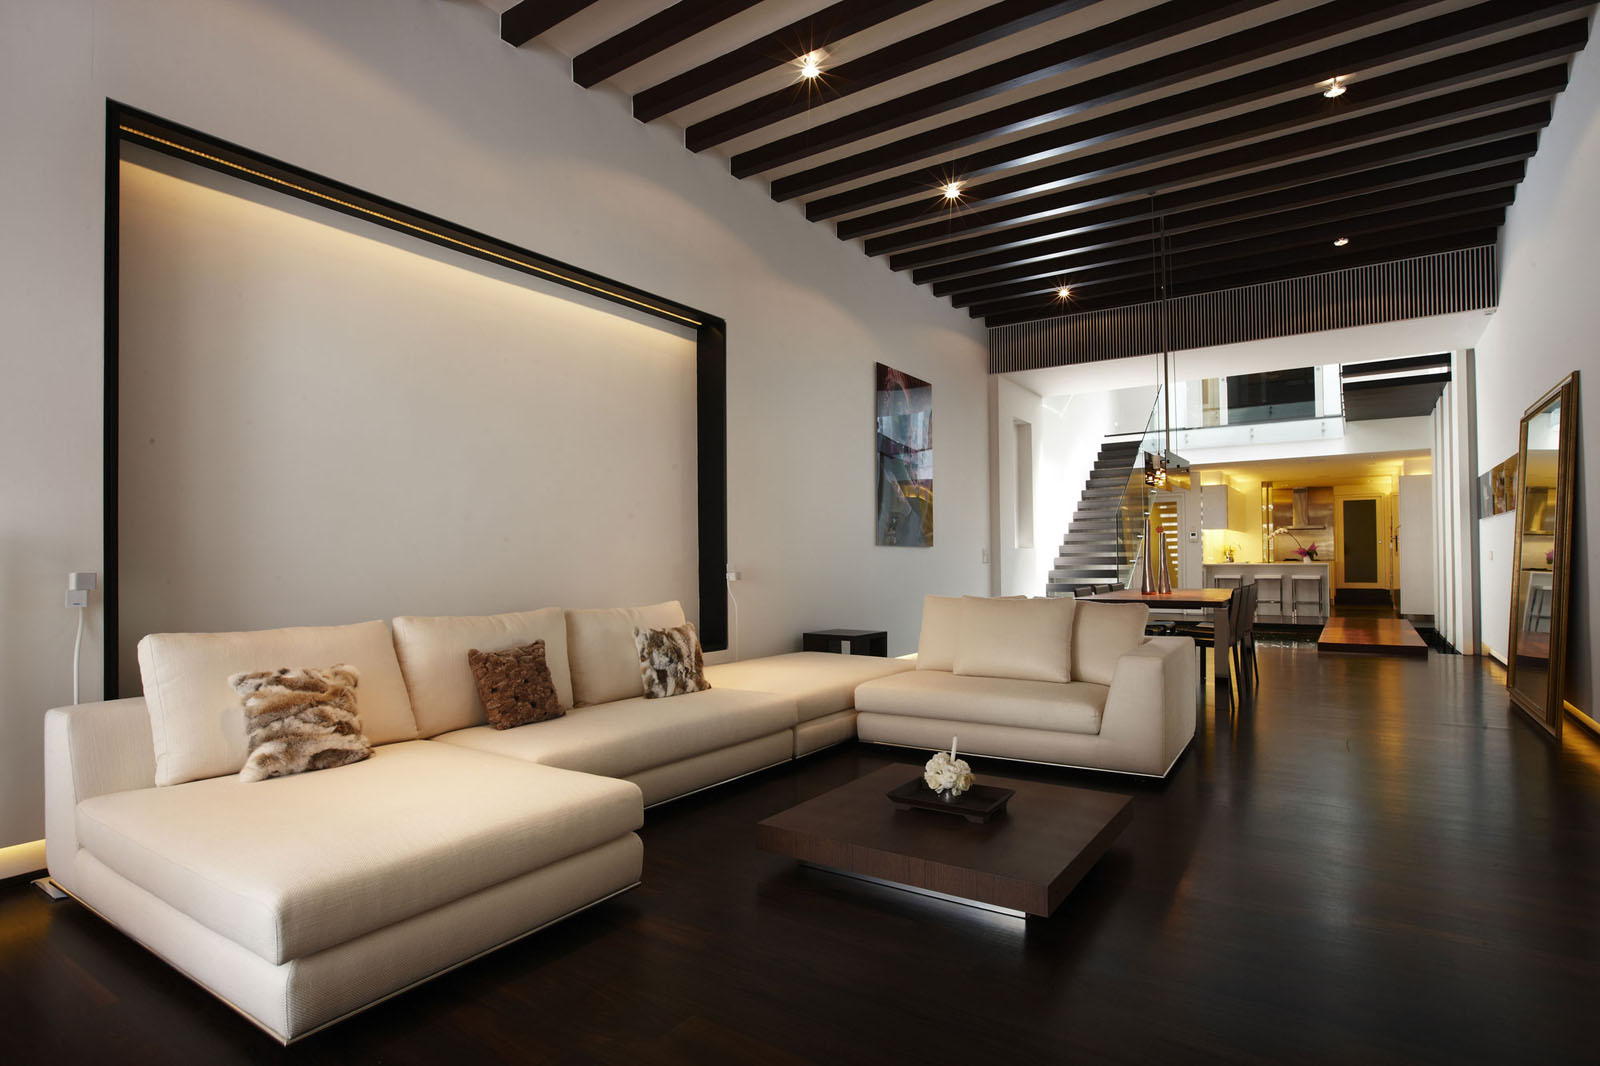 Singapore Contemporary Home Interiors. RichardHO Architects Designed The  Luxury ...